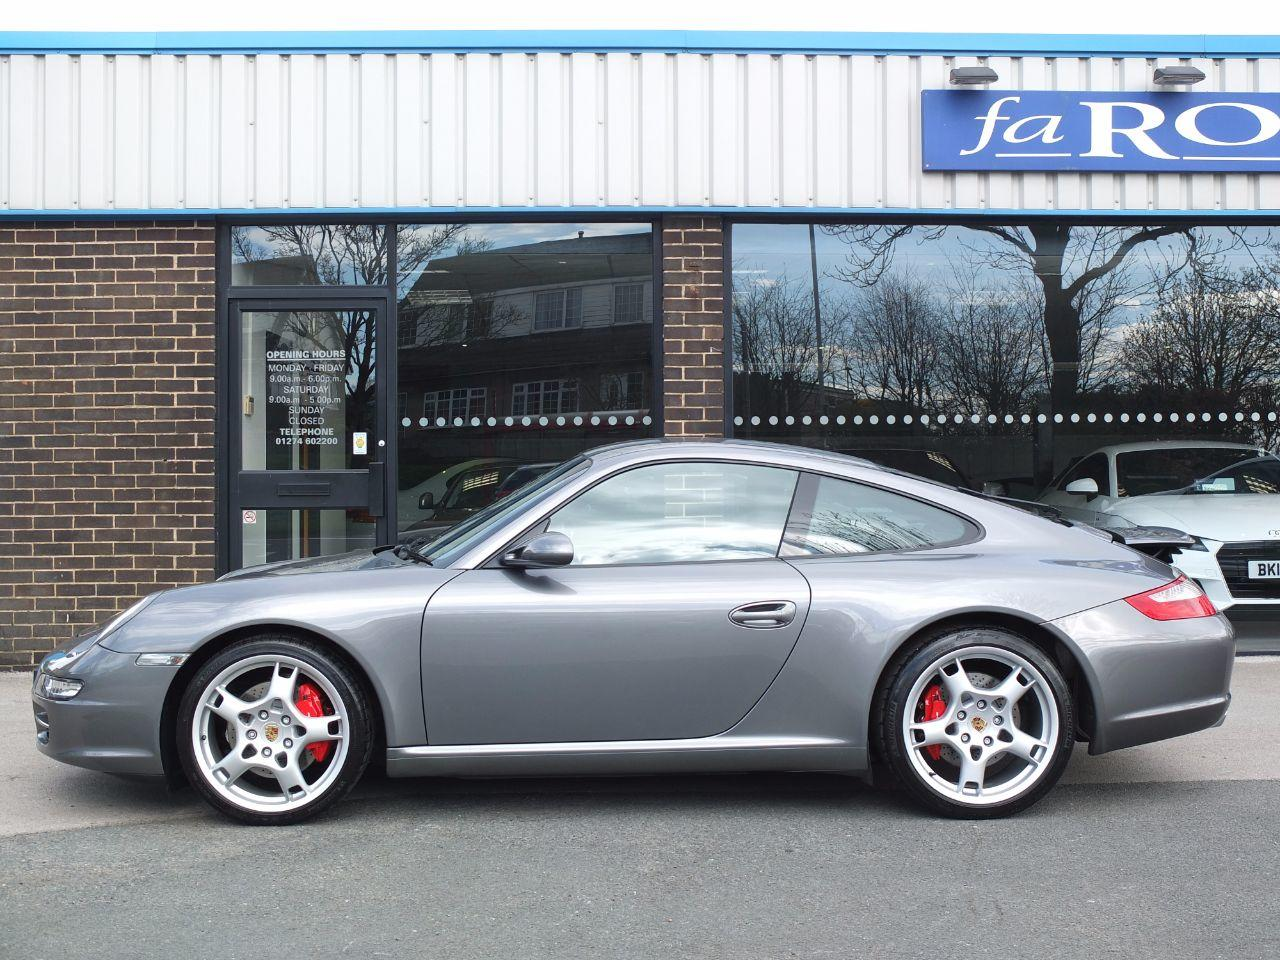 Porsche 911 997 Carrera 3.8 S Coupe C2S Coupe Petrol Seal Grey Metallic